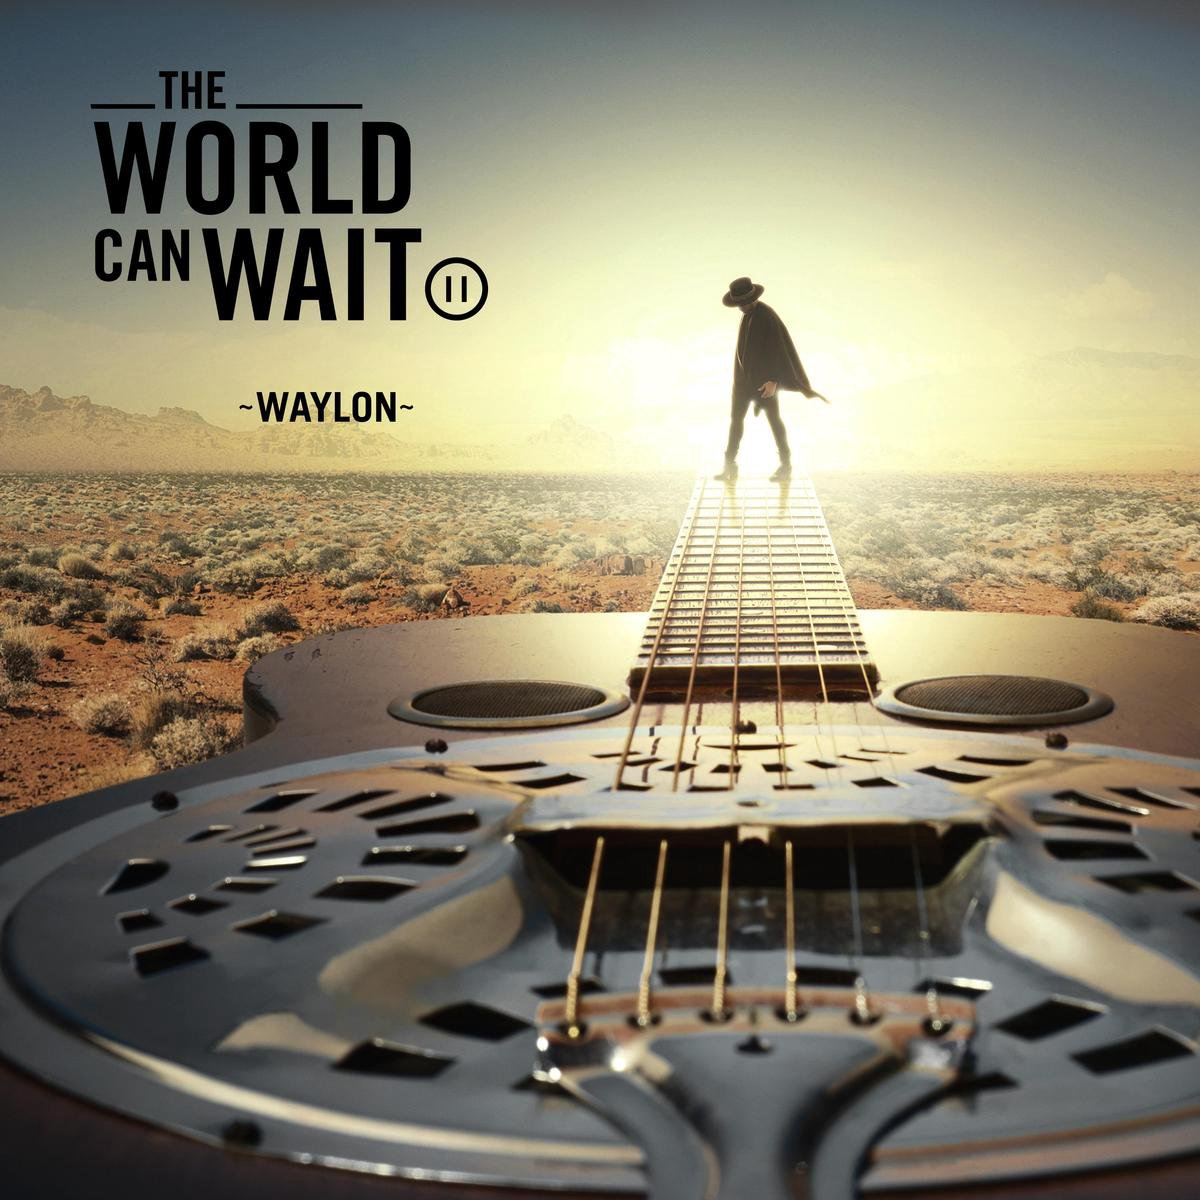 The World Can Wait - Waylon